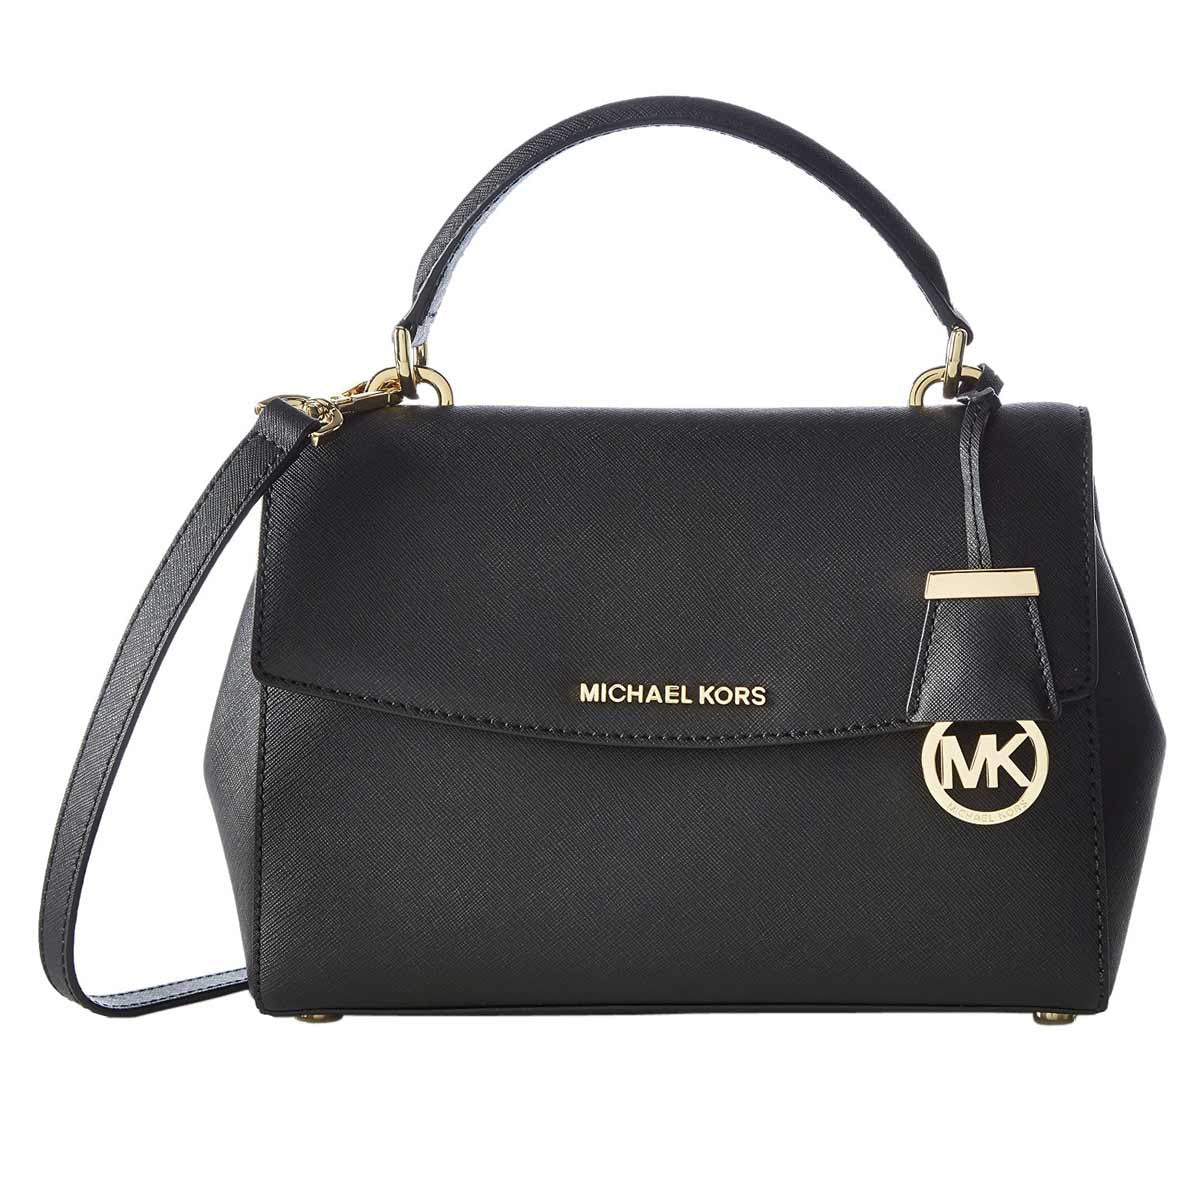 Michael Kors 30T5GAVS2L-001 Women's Ava Small Black Saffiano Leather Crossbody Satchel